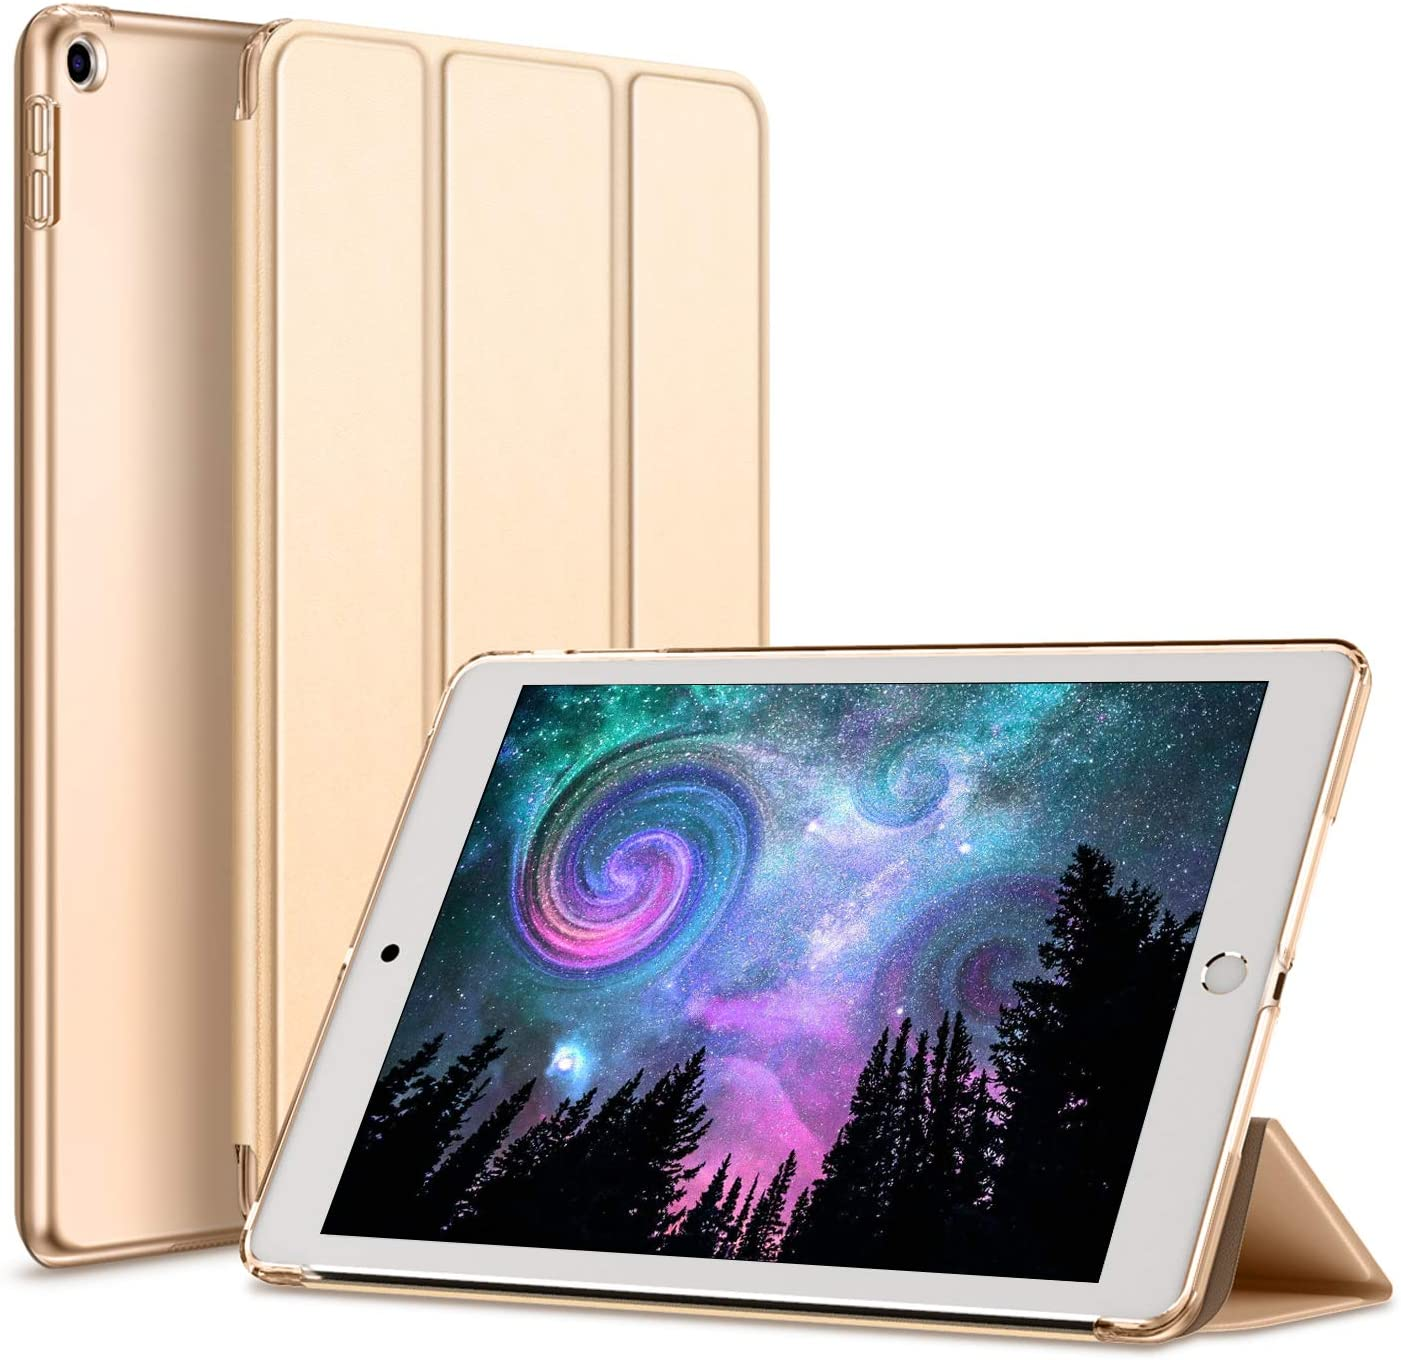 kenke iPad Case 9.7 Inch 2017/2018 5th/6th Generation,Slim Lightweight Smart Shell Stand Cover with Translucent Frosted Back,Auto Sleep/Wake for iPad 5th/6th Generation A1822, A1823, A1893, A1953-Gold